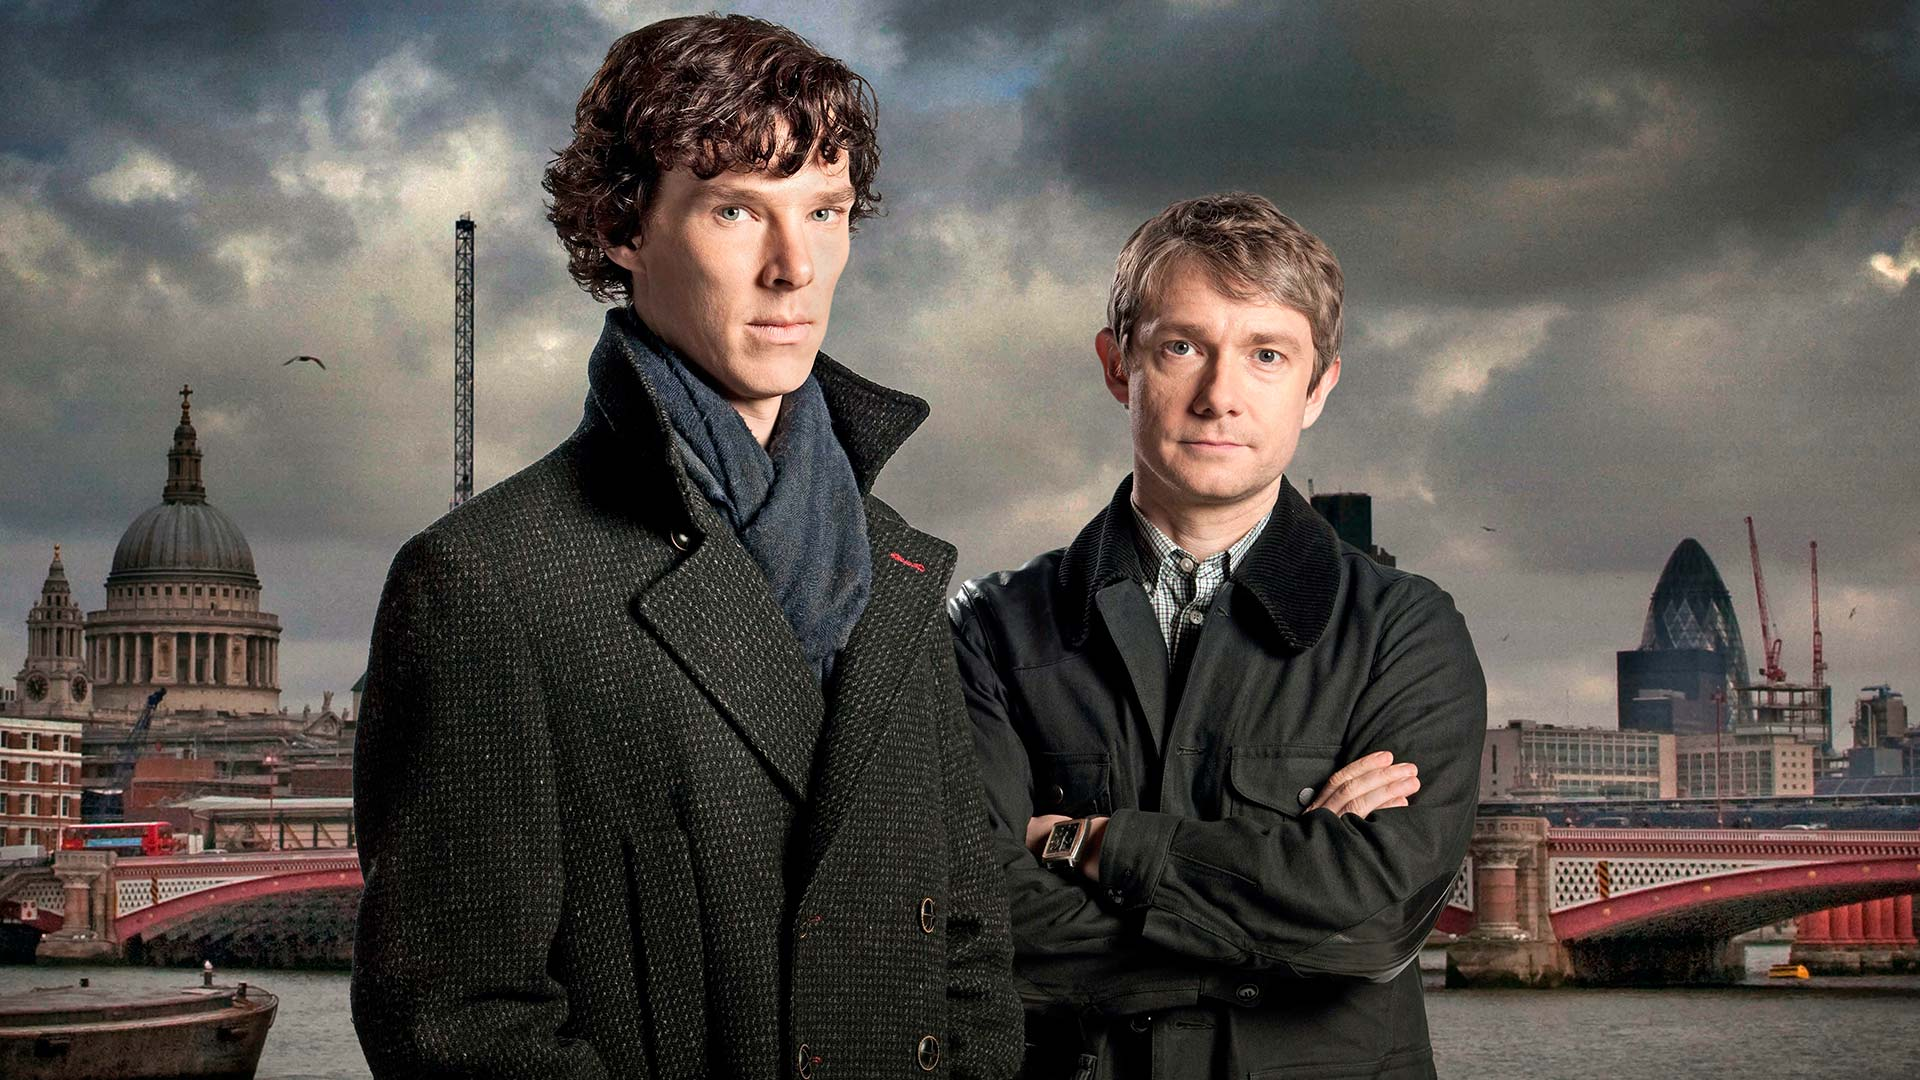 Sherlock team to tackle Dracula series for Netflix